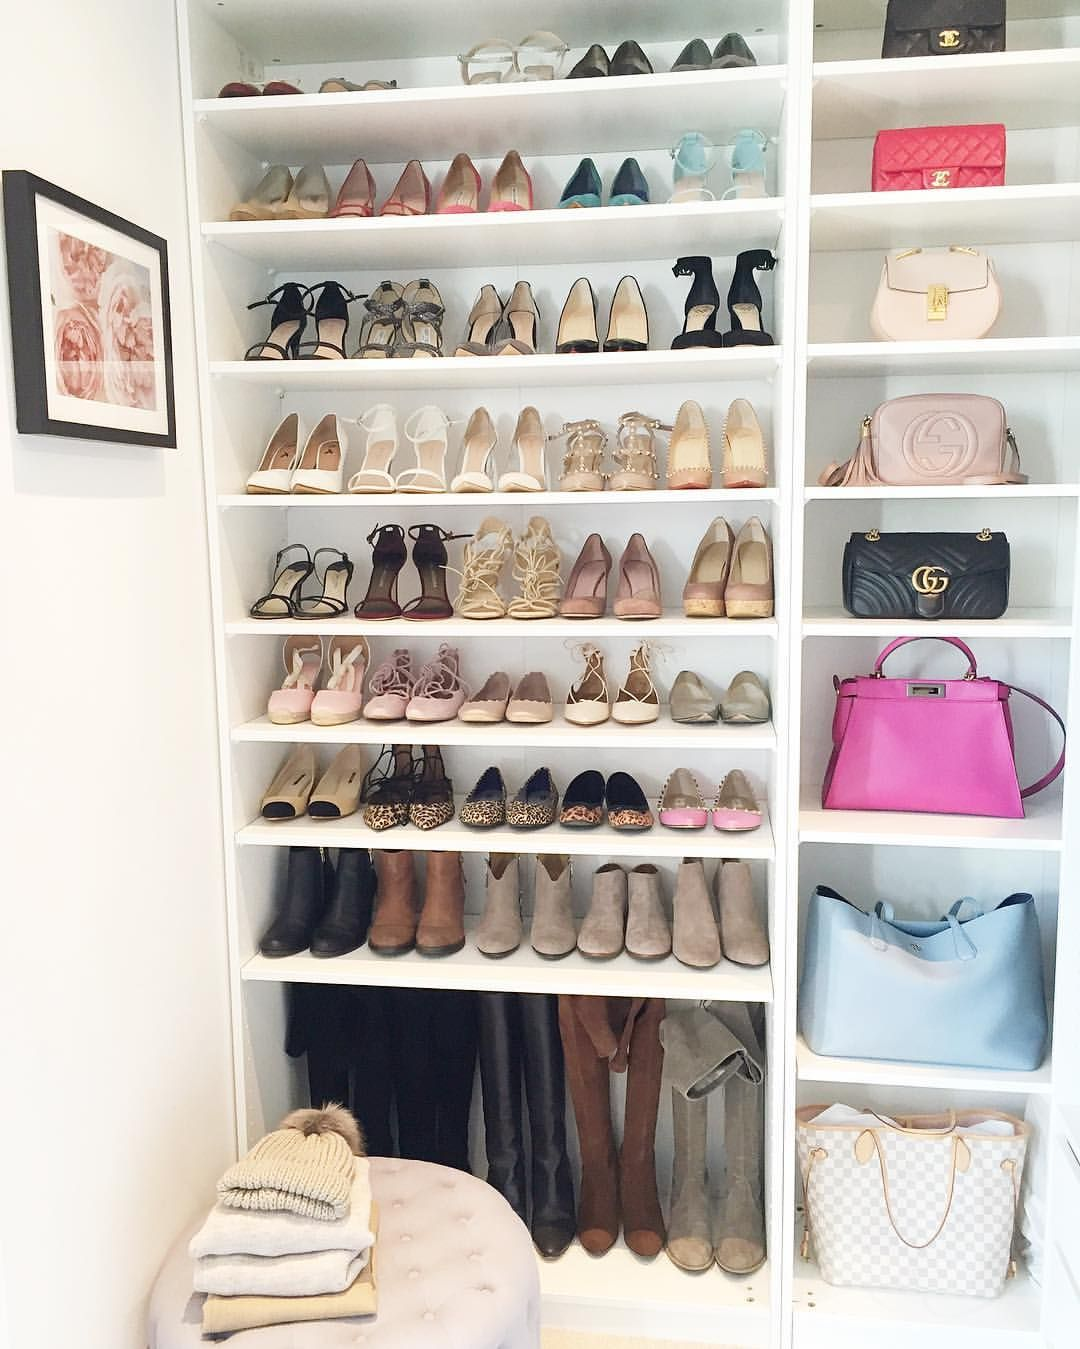 shelves-shoes-closet-wardrobe-storage-how-to-stack-floor-white-boots.jpg